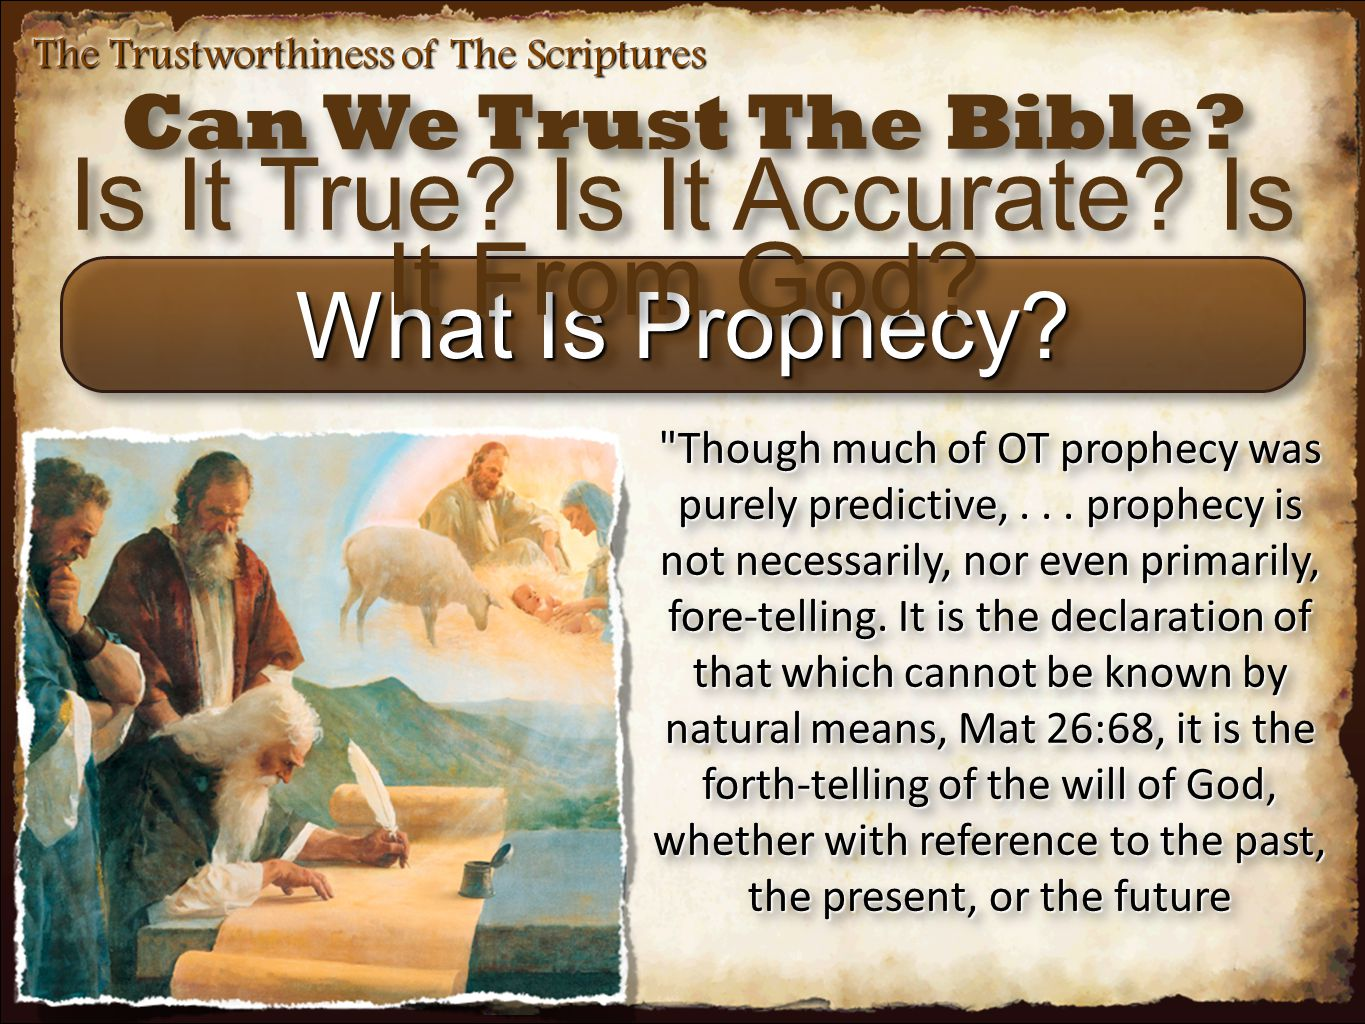 The Trustworthiness of The Scriptures Bible Prophecy Confirms the Divine Origin of Scripture.